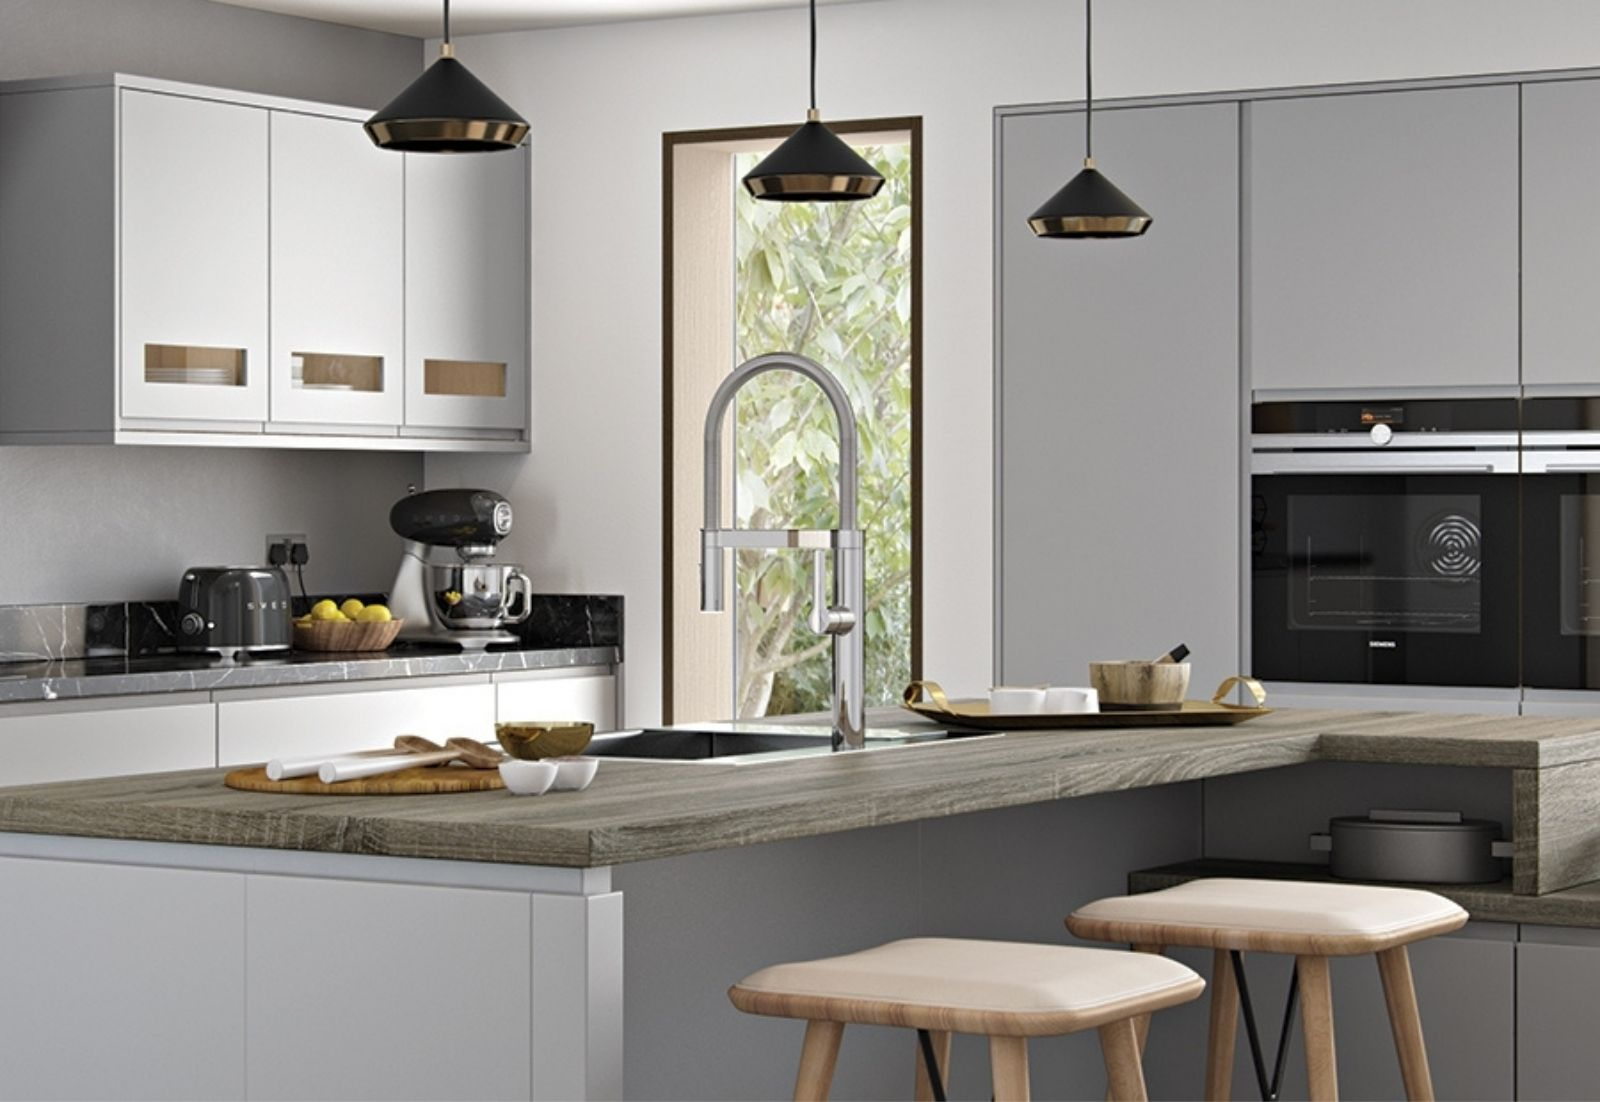 How To Prepare For Your Kitchen Installation